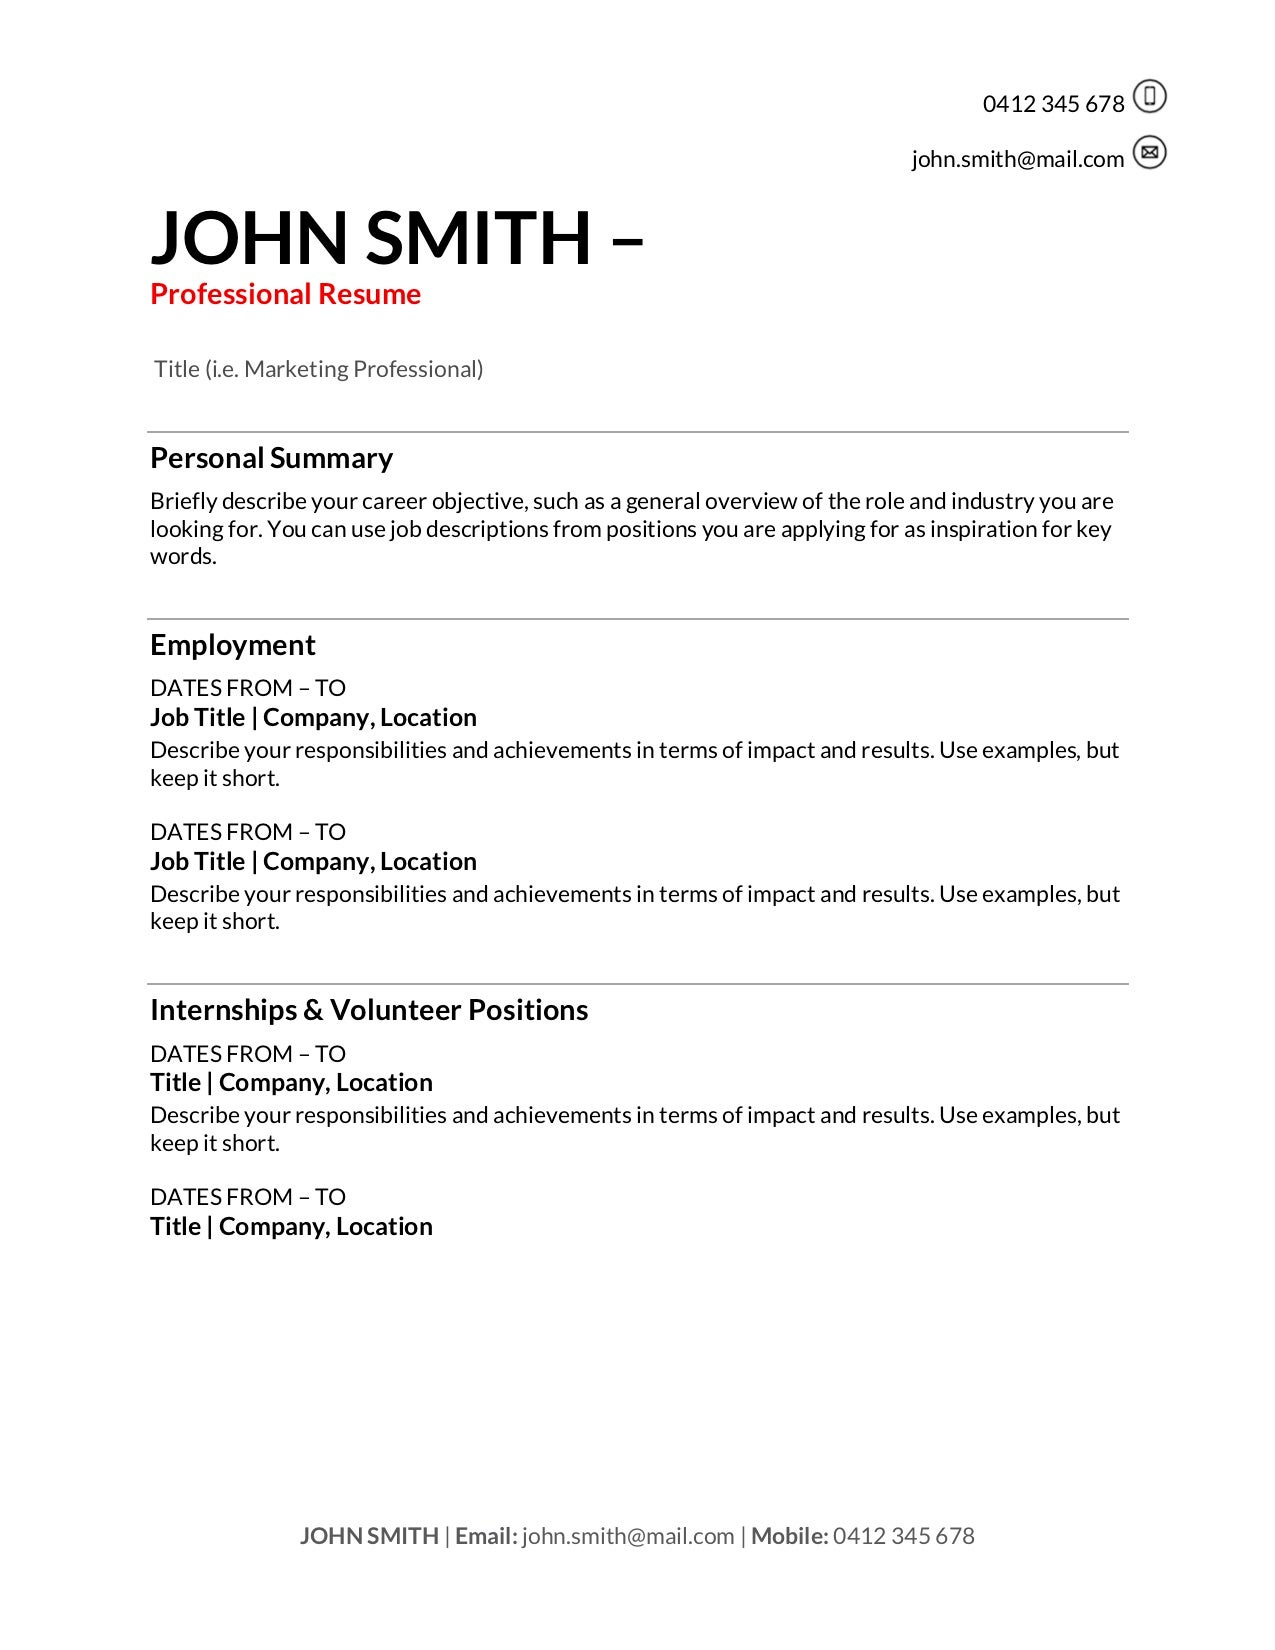 free resume templates to write in training au first time template sourcing techniques get Resume First Time Resume Template